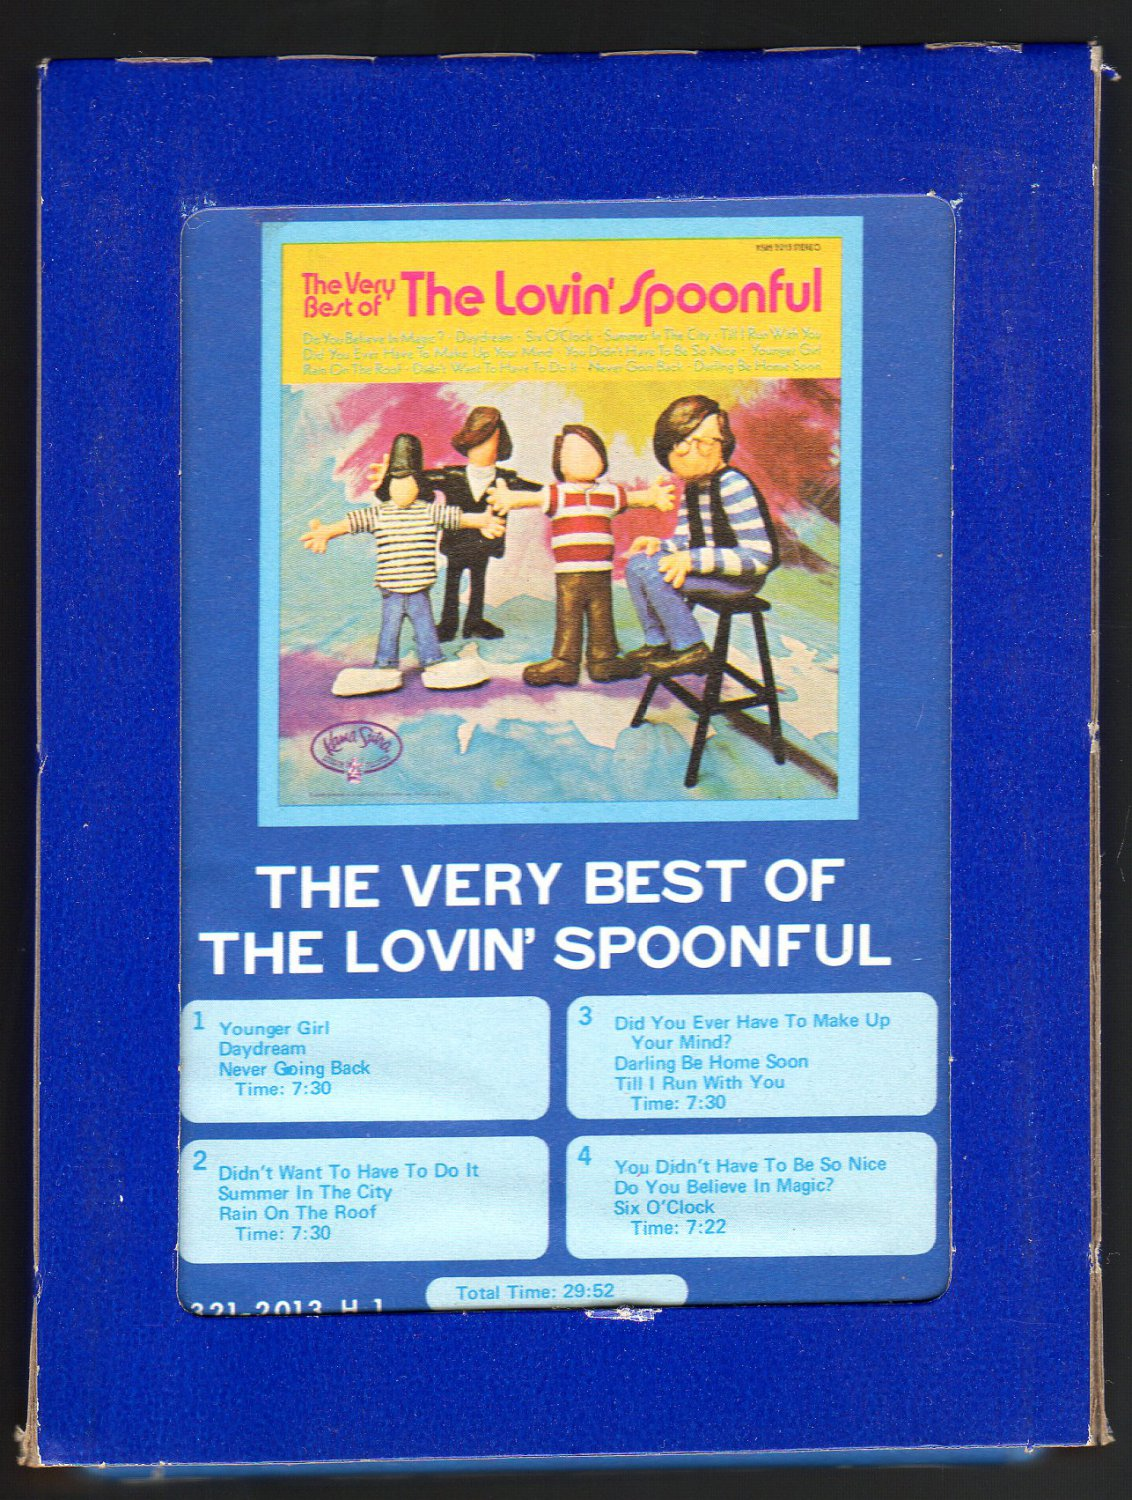 Lovin' Spoonful - The Very Best Of The Lovin' Spoonful 1970 GRT KAMASUTRA C/O A32 8-TRACK TAPE